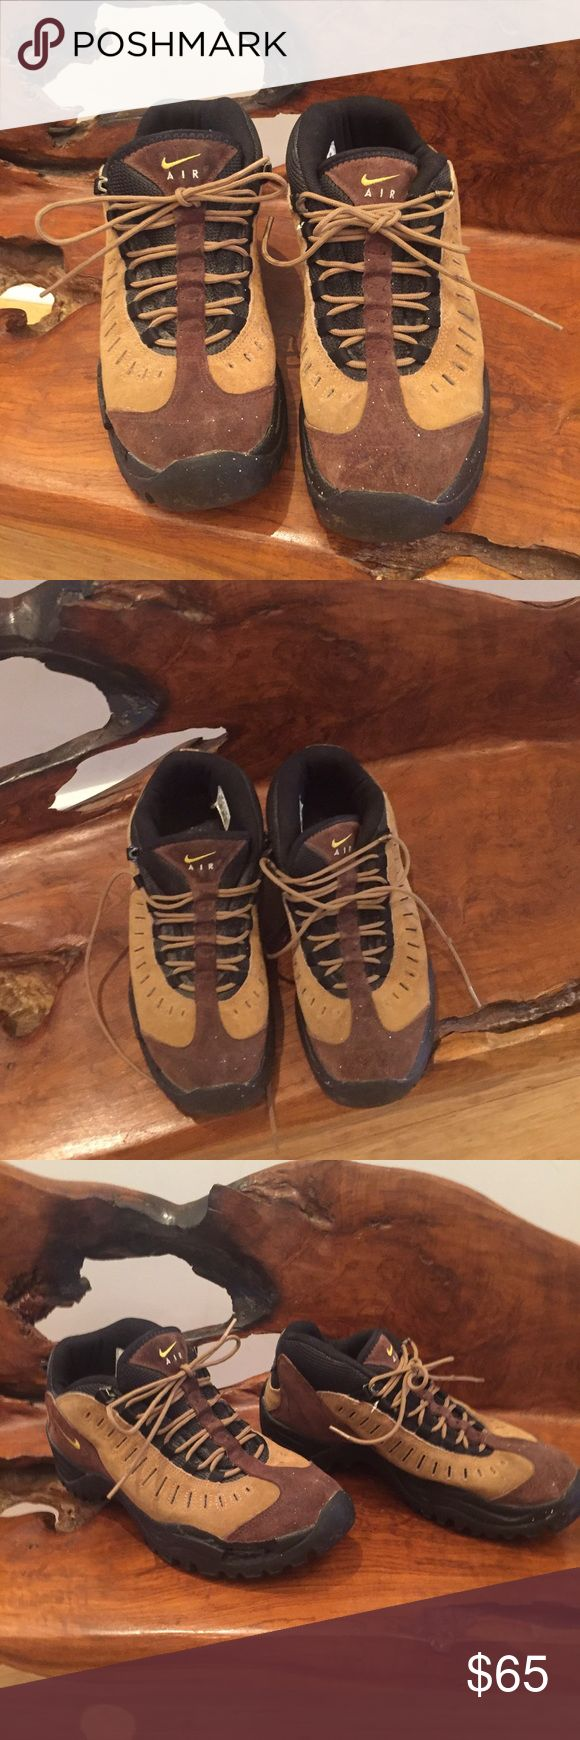 Nike Air Brown/Tan Men's Shoes size 10.5 Nike Air Brown/Tan/Black Men's Shoes size 10.5. They are priced low due to some light paint splatter shown in pics. Otherwise I'm great Condition. Not noticeable at a distance or would be great work shoes! Soles are flawless as you can see! Bundle and Save $$$ Nike Shoes